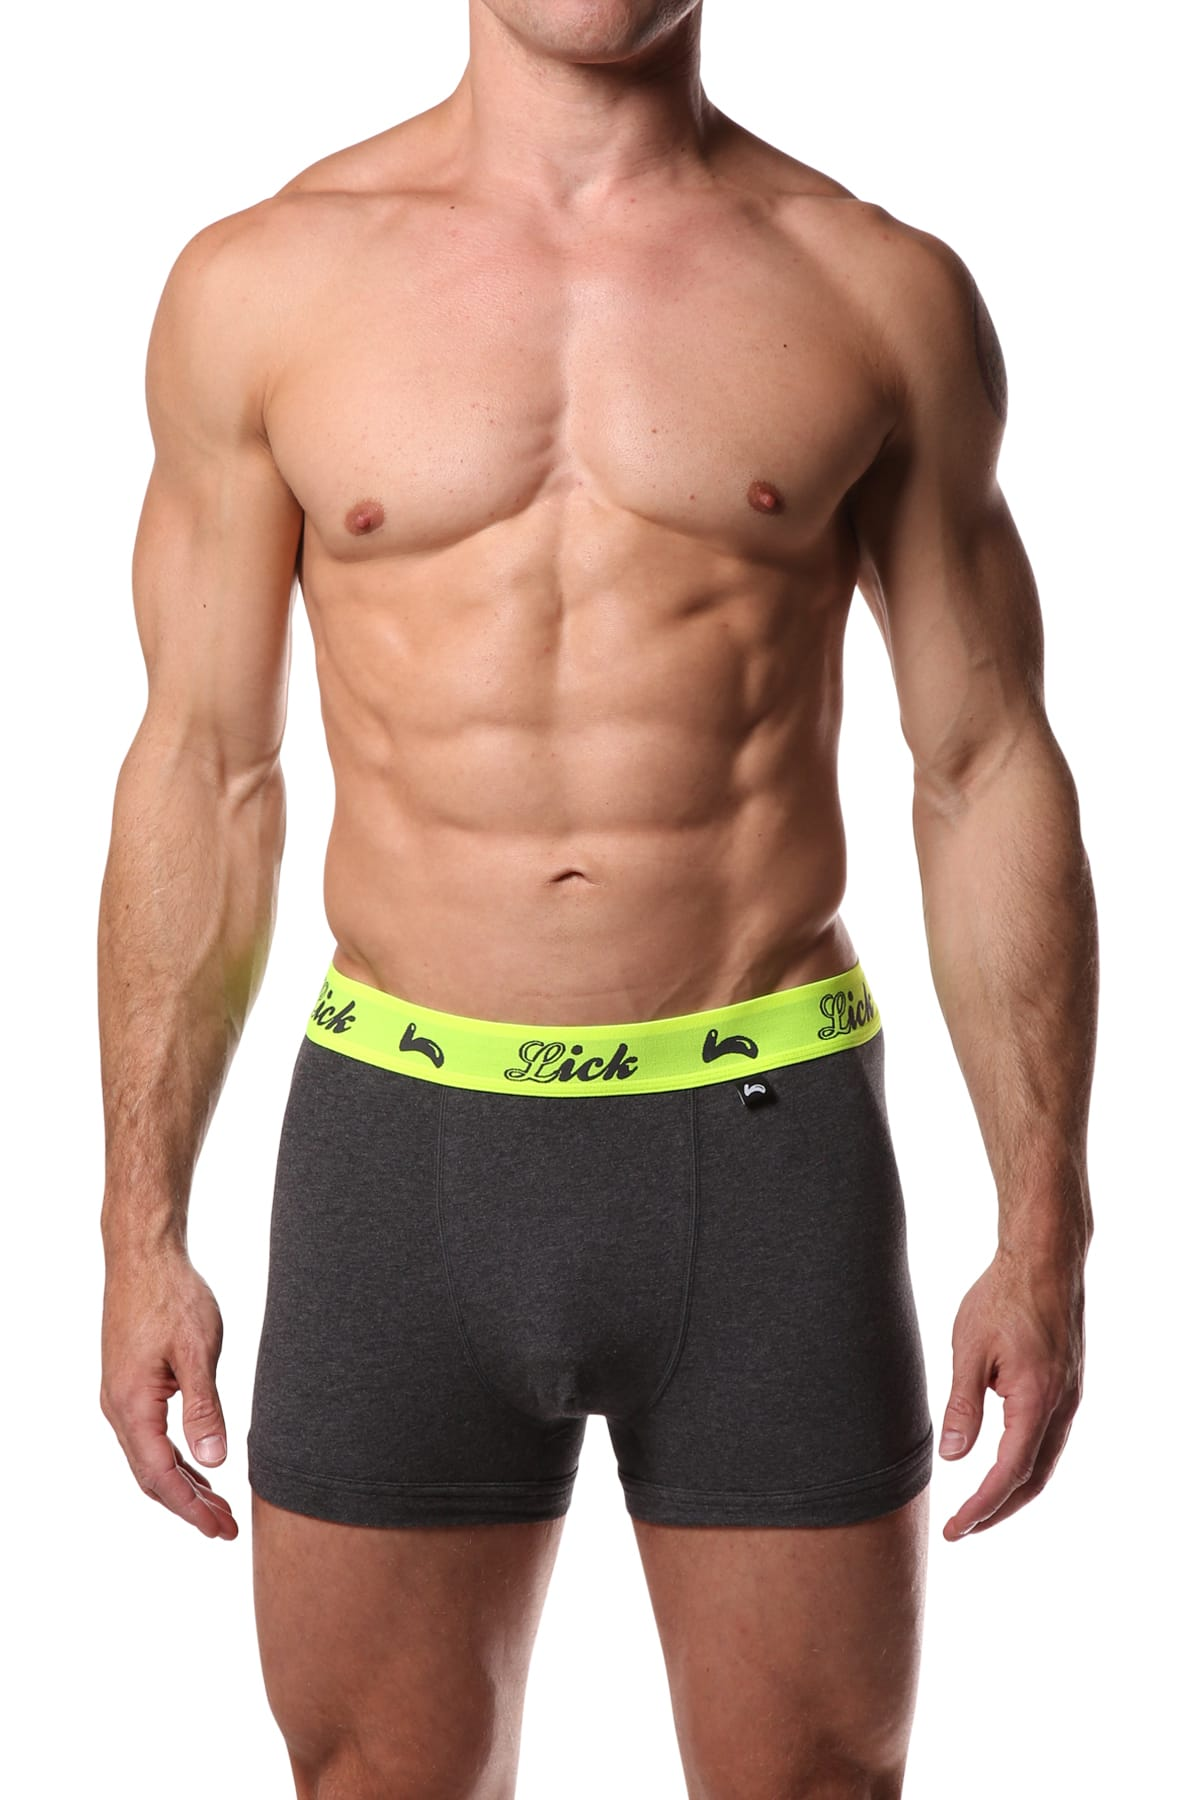 Lick Alto Neon Boxer Brief